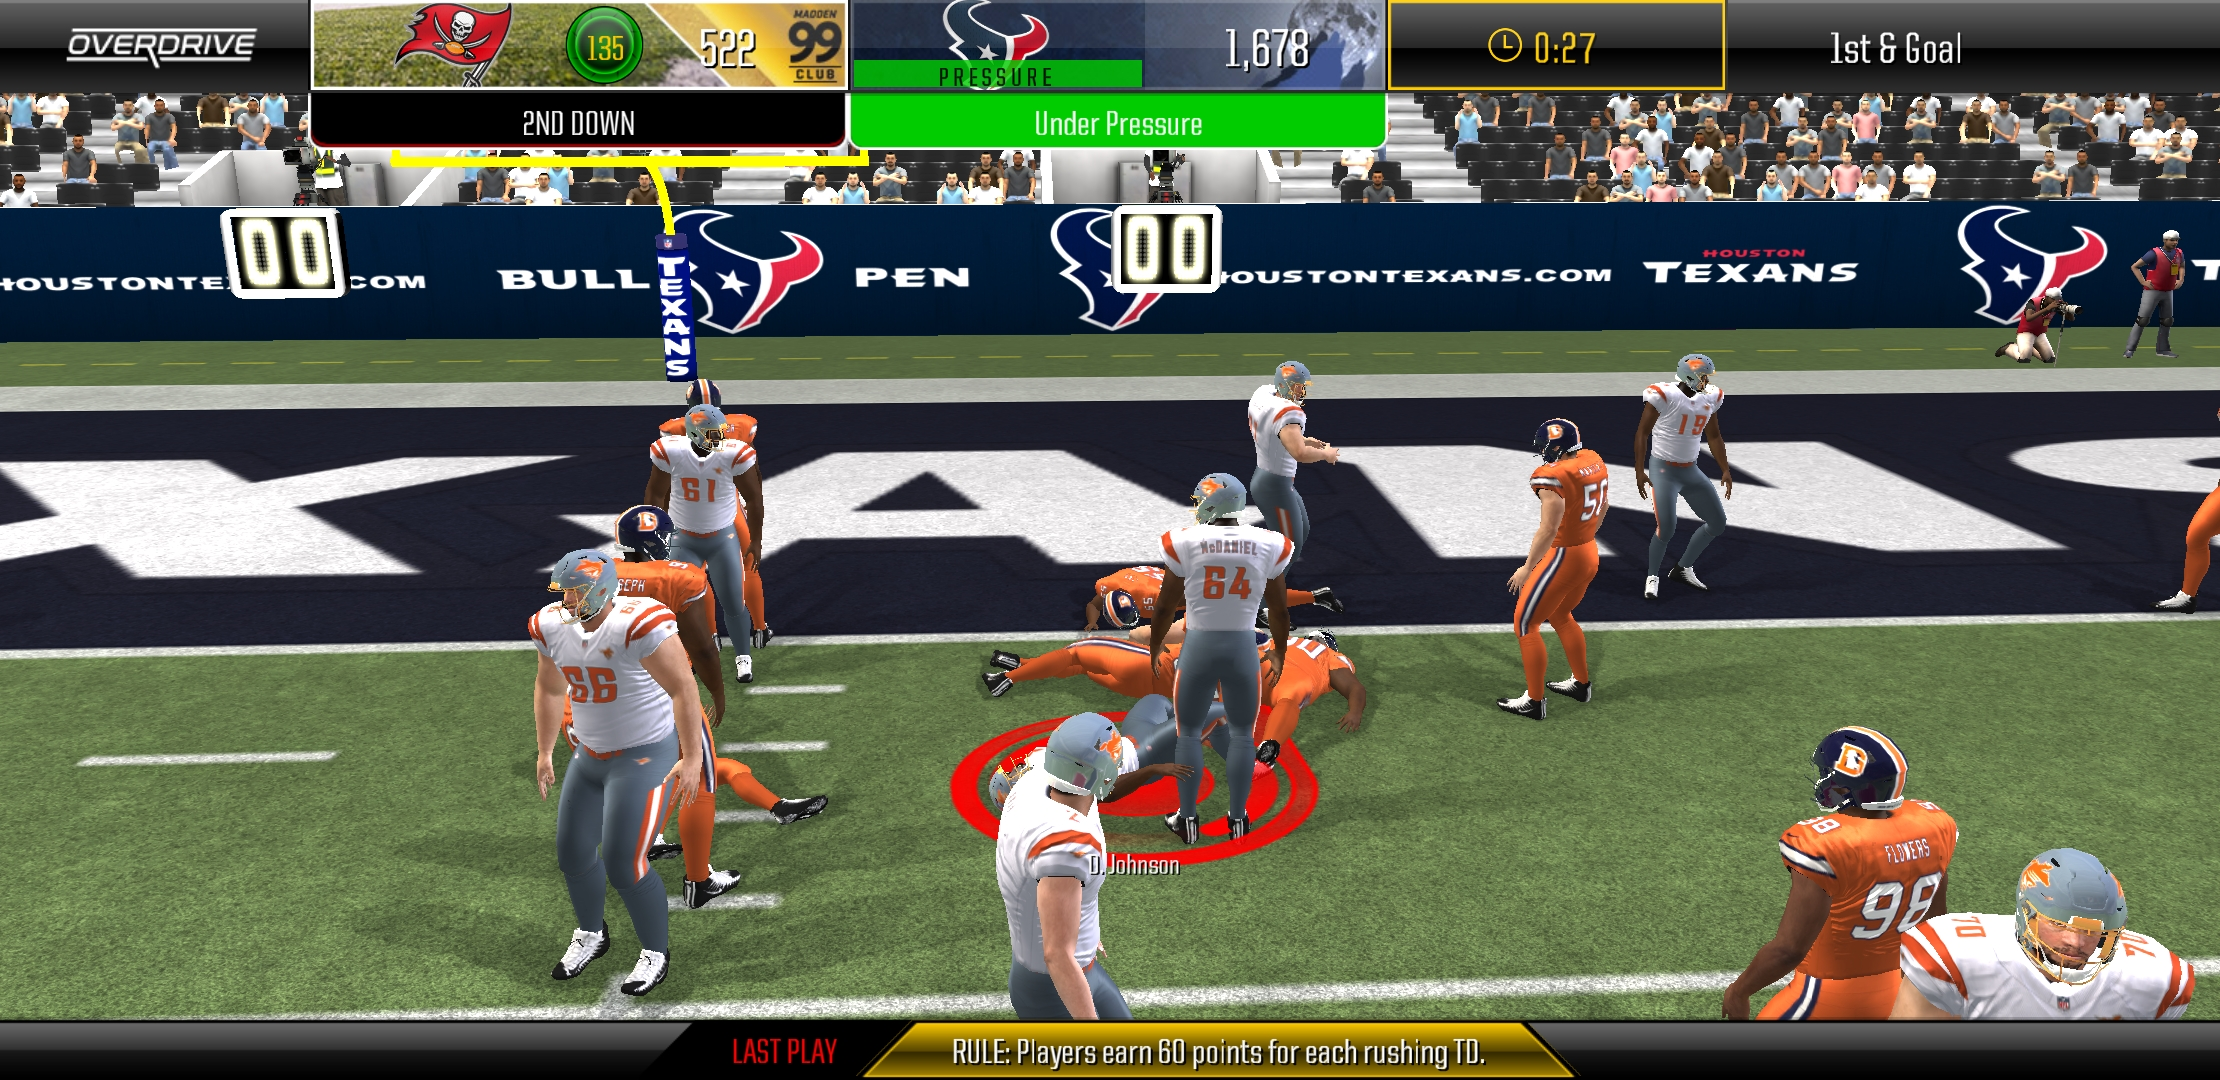 Screenshot_20190422-212636_Madden NFL.jpg